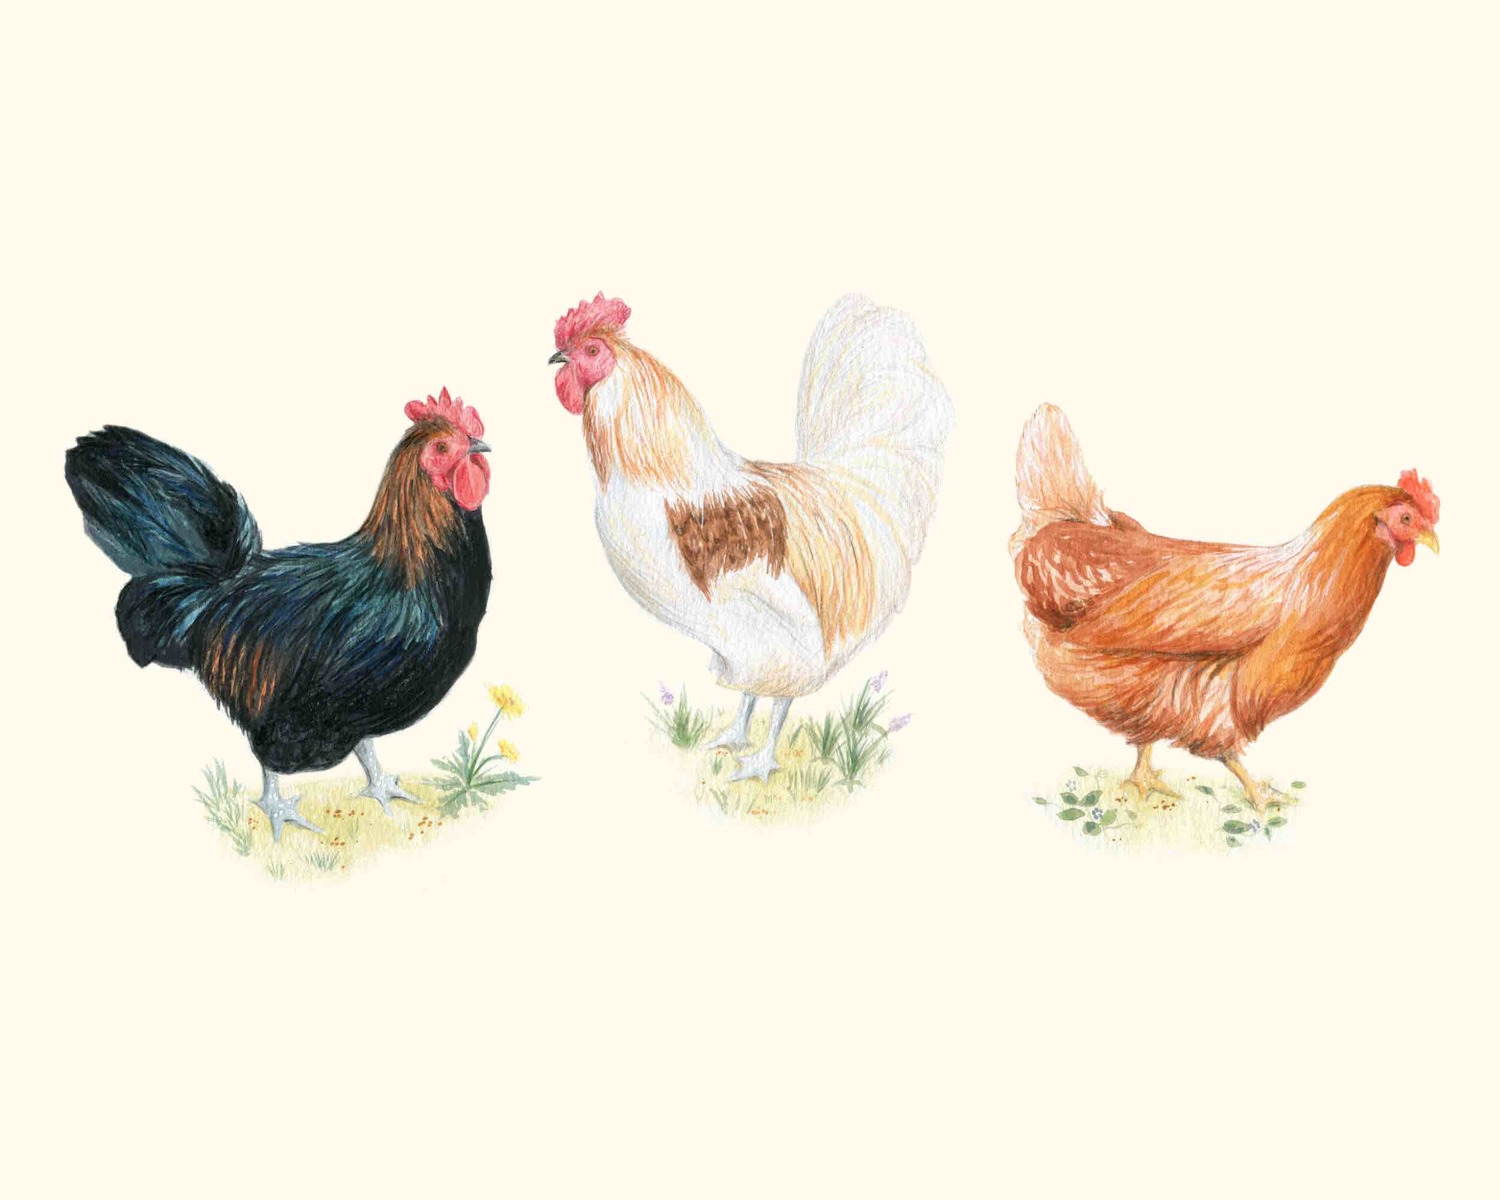 chickens for lucky peach u2014 kendyll hillegas